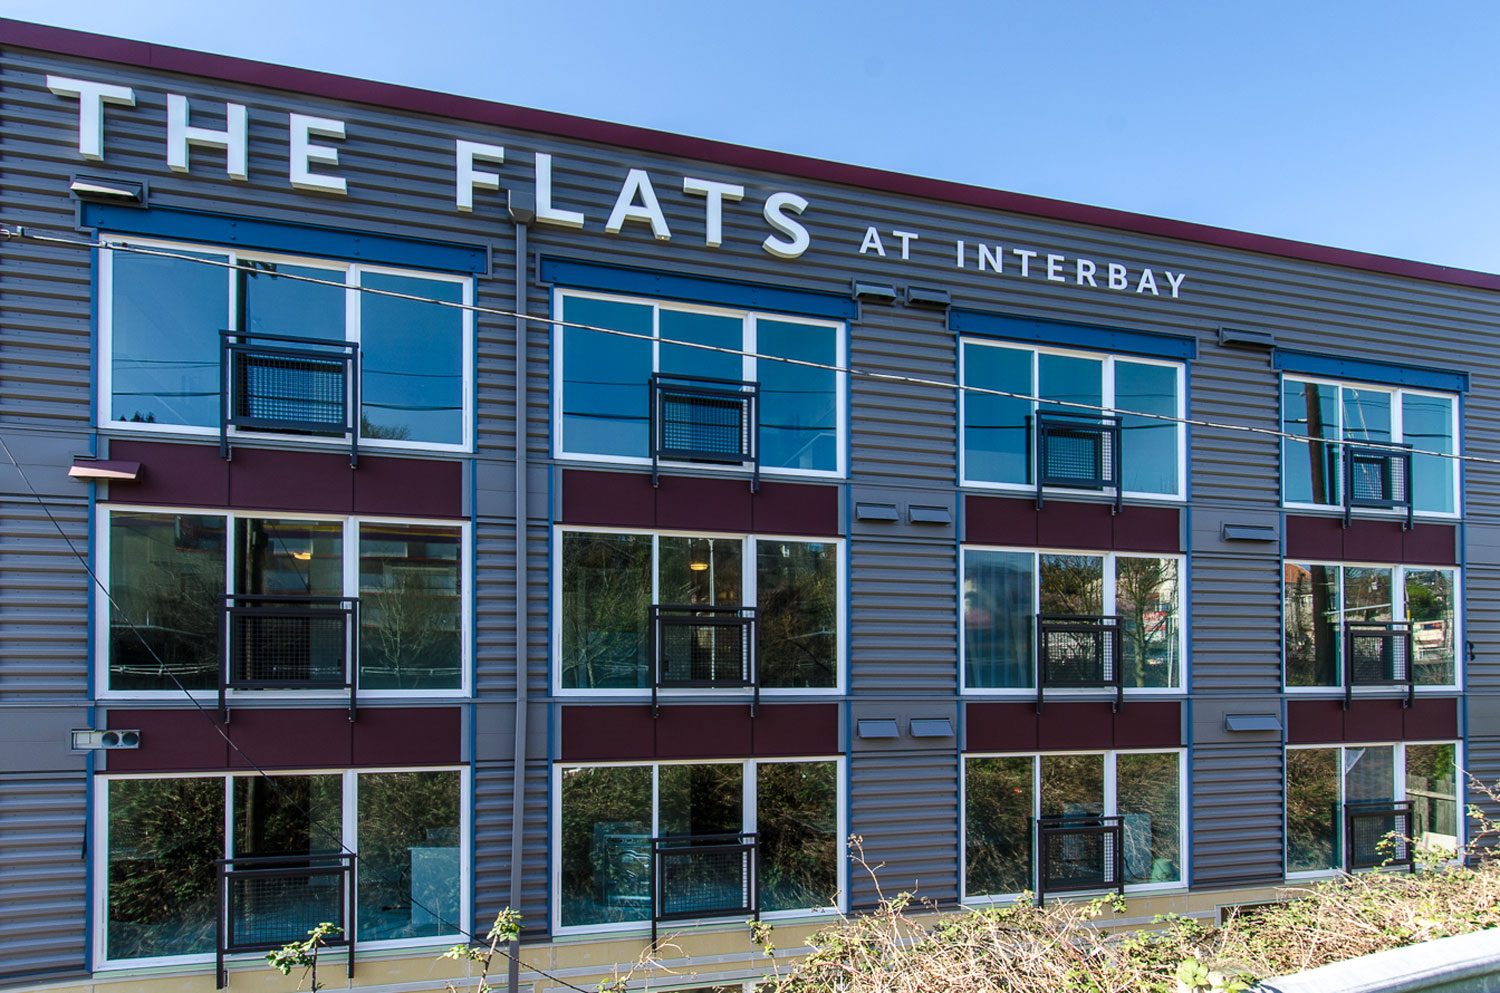 The Flats at Interbay